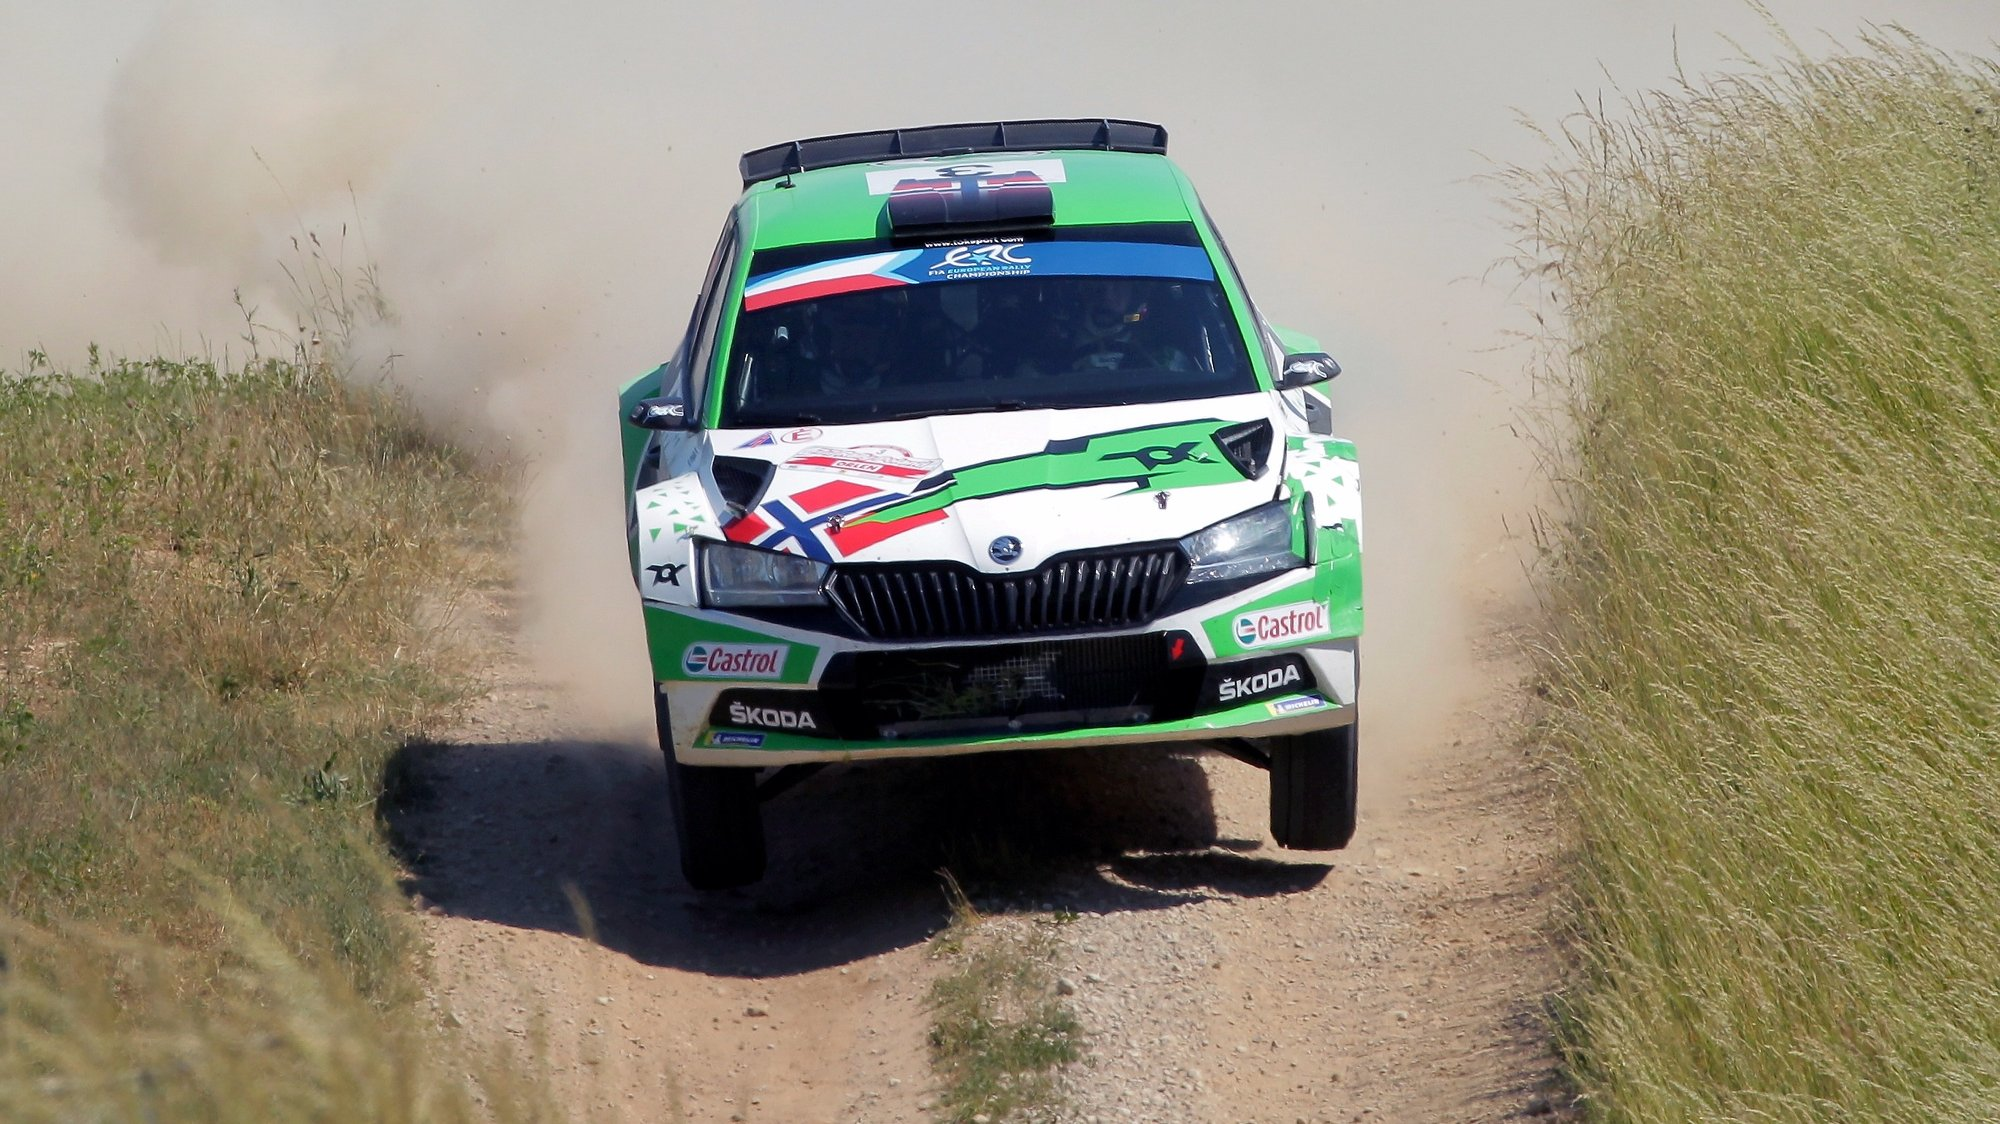 epa09285764 Andreas Mikkelsen of Norway drives his Skoda Fabia Rally2 Evo during day 2 of the Rally Poland 2021, in Dziegiele, northern Poland, 19 June 2021.  EPA/TOMASZ WASZCZUK POLAND OUT